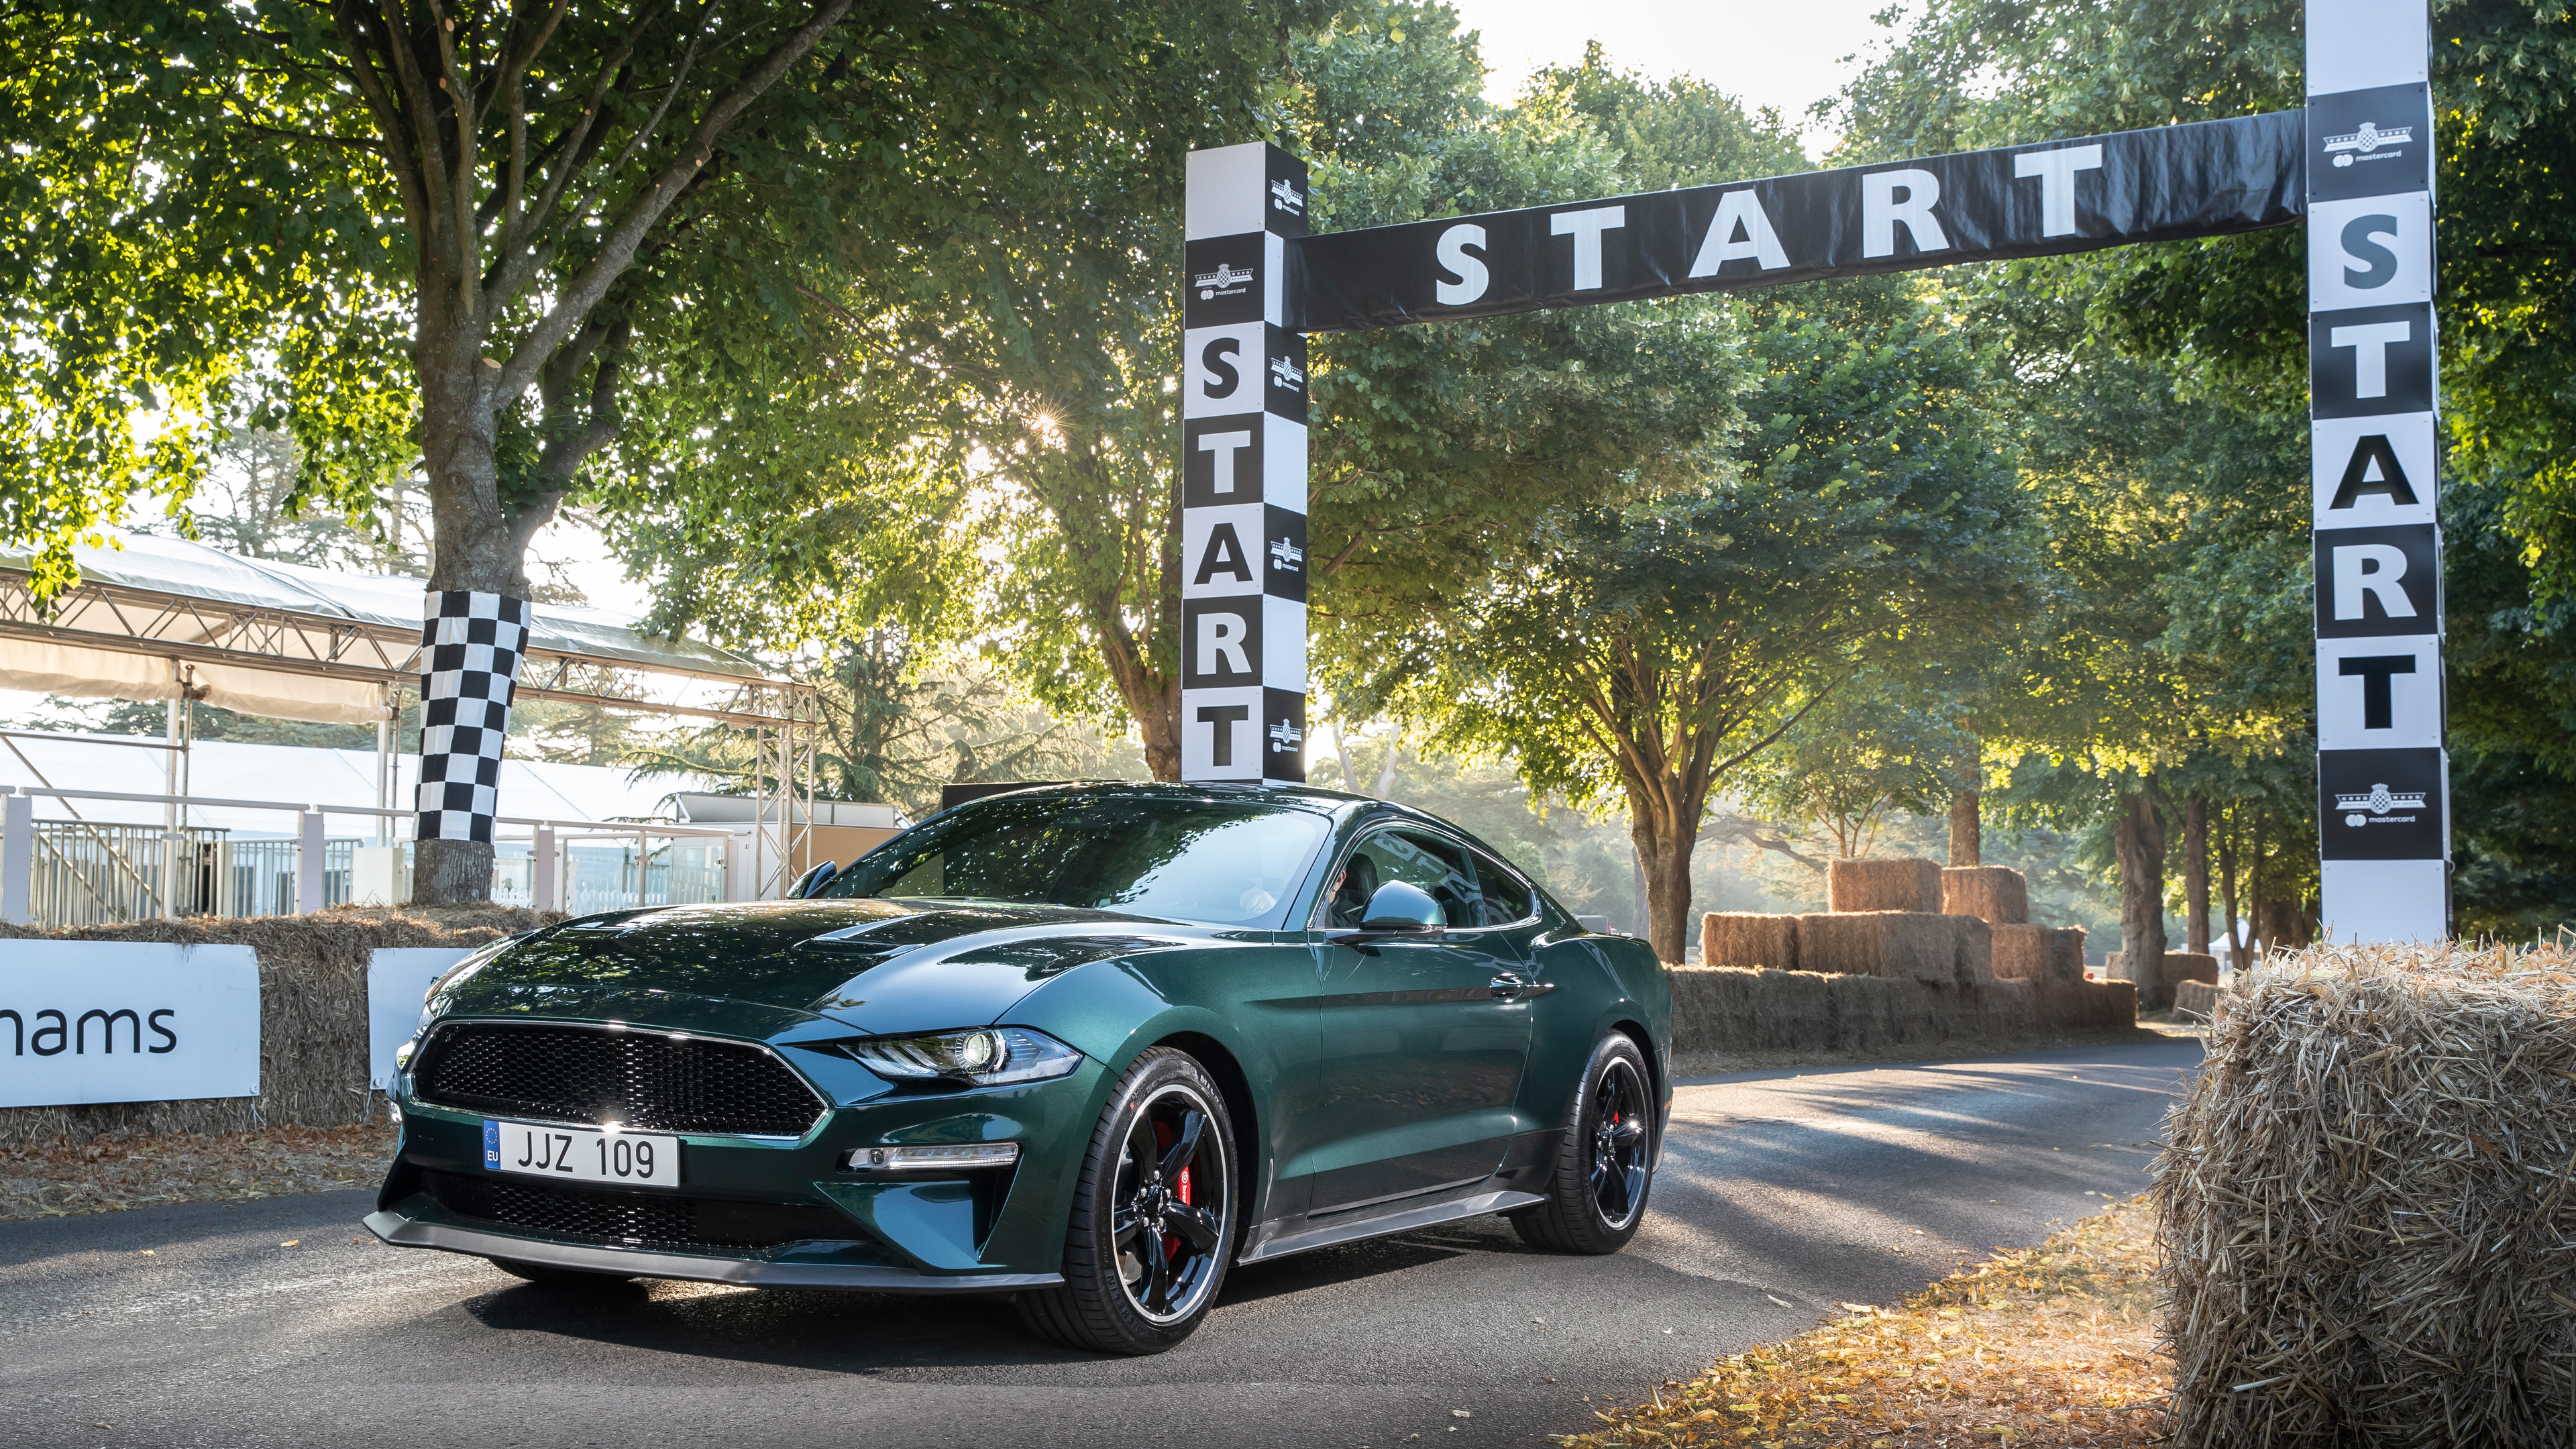 ford mustang bullitt new limited edition 2019 1539792853 - Ford Mustang Bullitt New Limited Edition 2019 - mustang wallpapers, hd-wallpapers, ford mustang wallpapers, cars wallpapers, 5k wallpapers, 4k-wallpapers, 2018 cars wallpapers